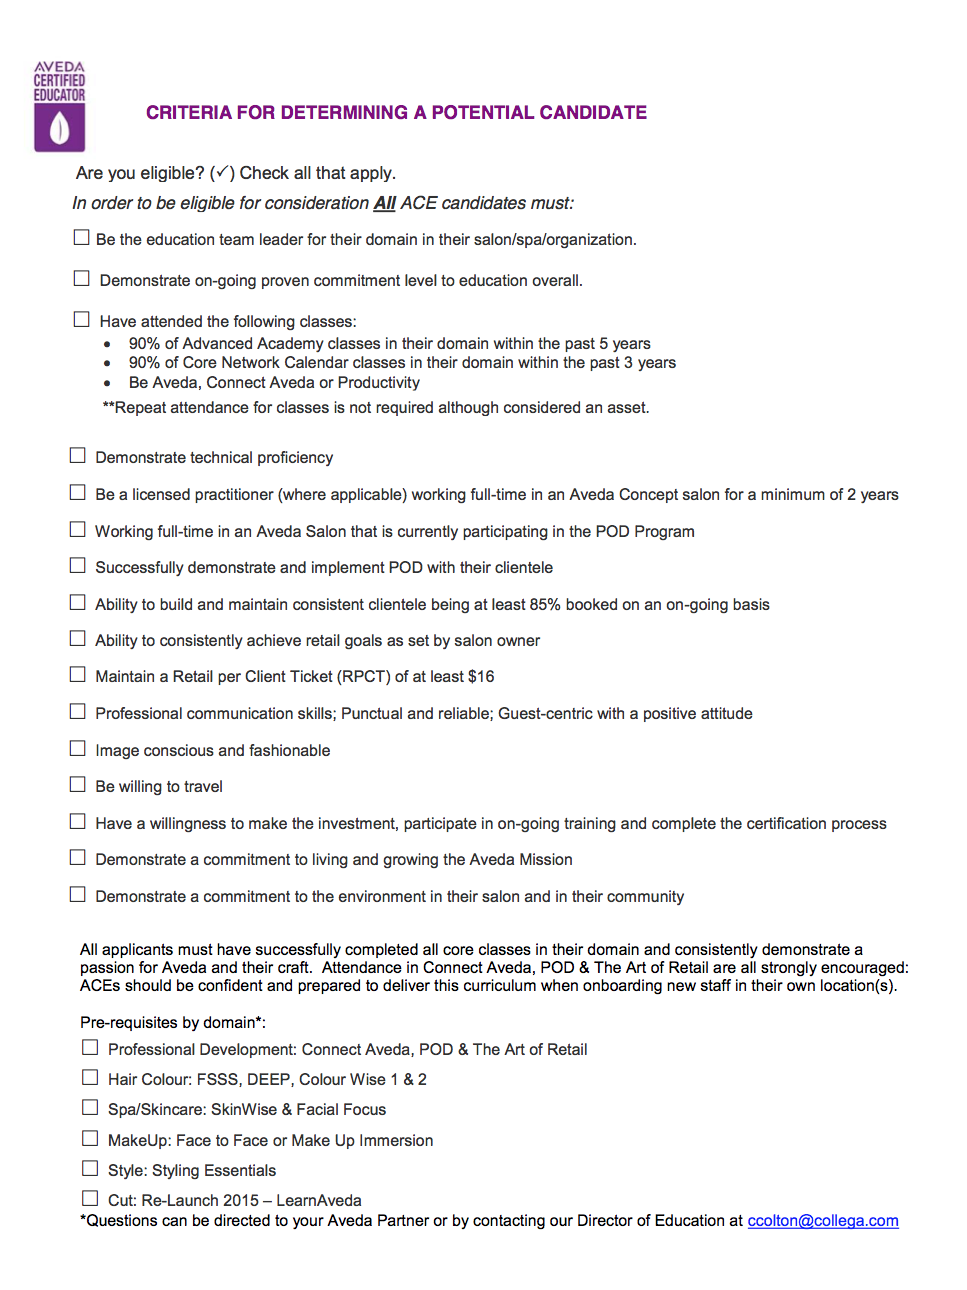 CRITERIA DOCUMENT - CLICK HERE TO DOWNLOAD